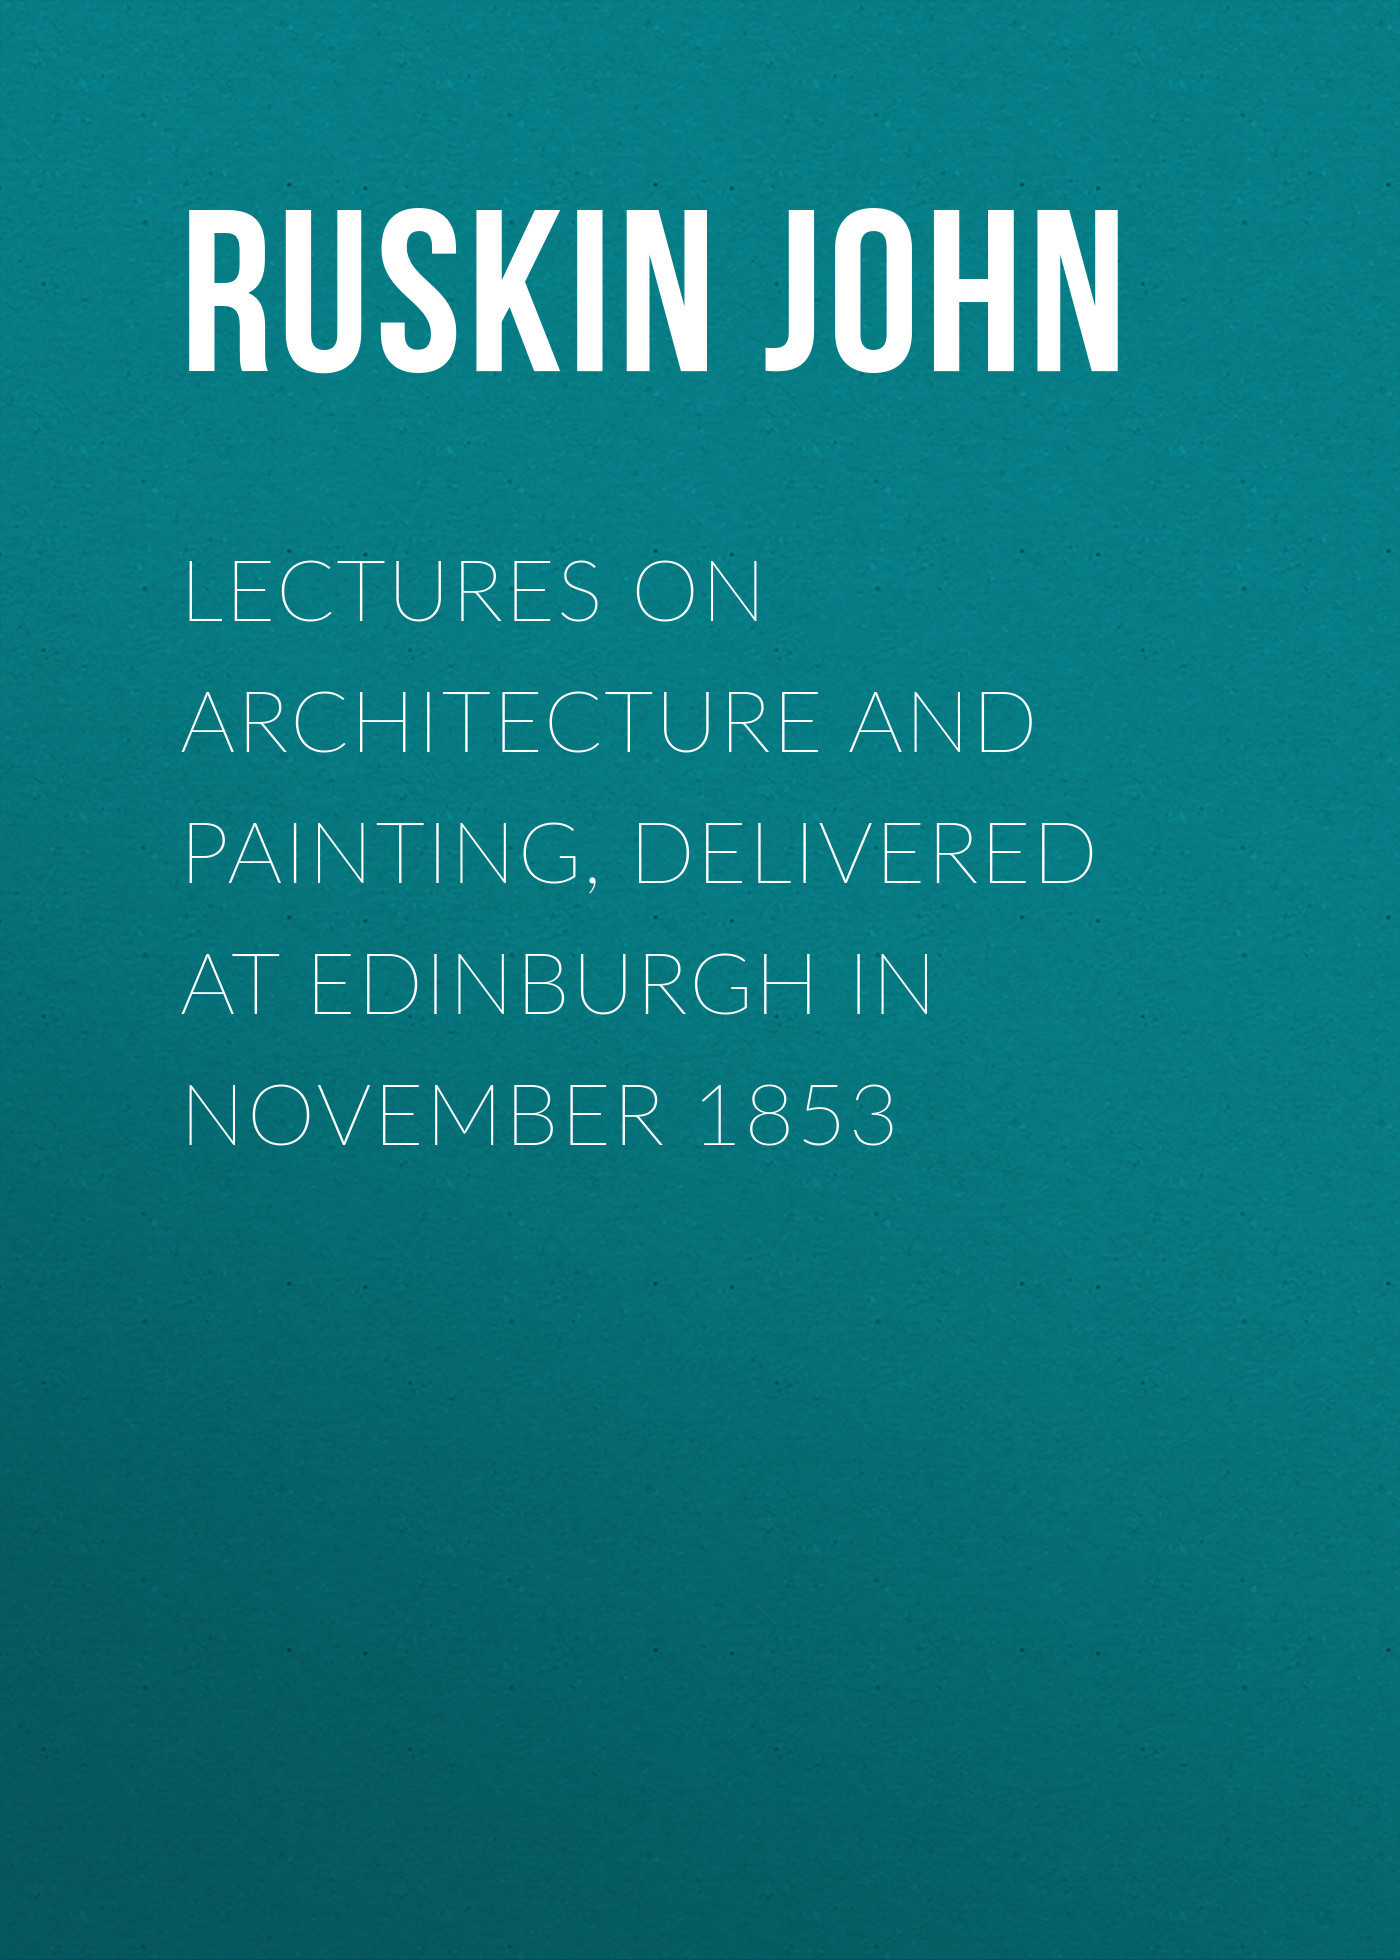 Lectures on Architecture and Painting, Delivered at Edinburgh in November 1853